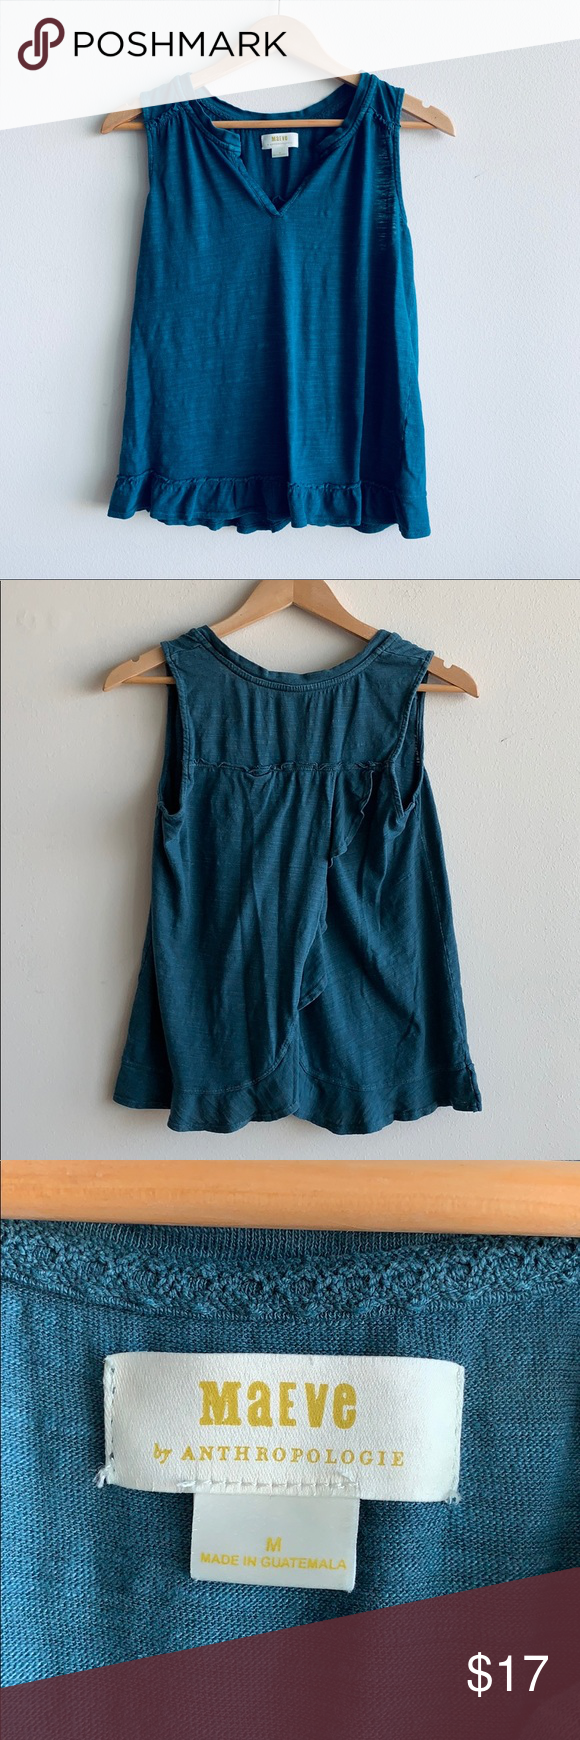 "3166769dde041 MAEVE - Green Top Great pre owned conditions Top length 22"" Chest length  20"" Anthropologie Tops Tees - Short Sleeve"